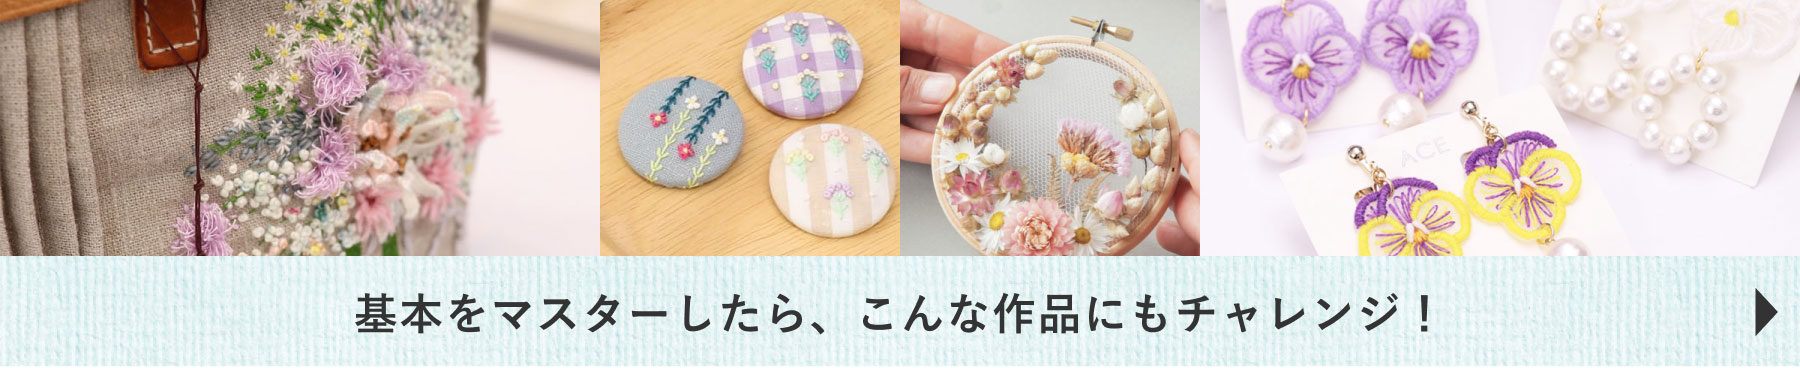 Embroidery master link